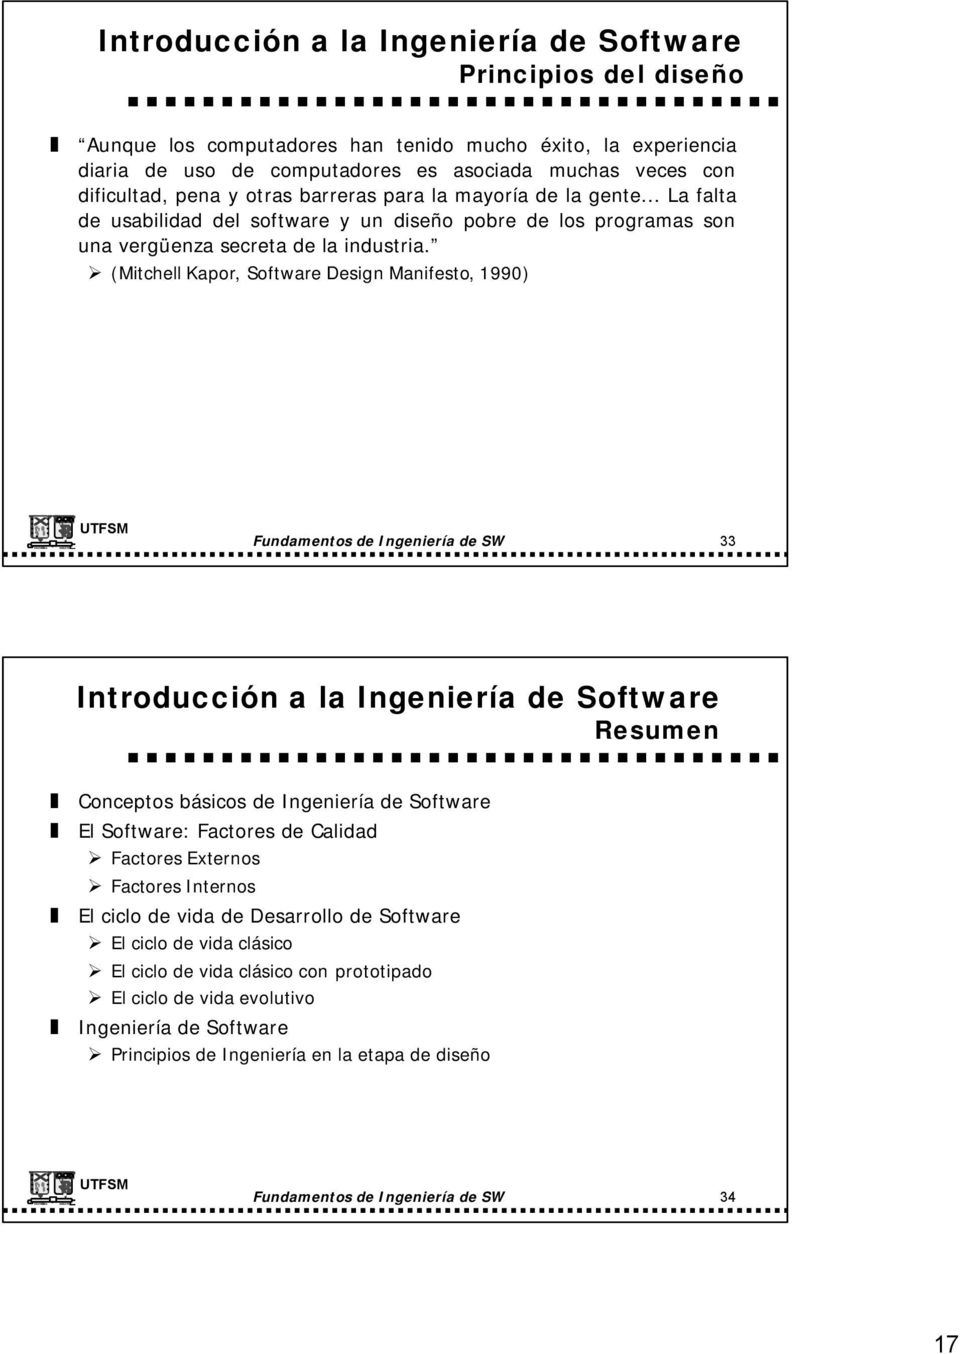 (Mitchell Kapor, Software Design Manifesto, 1990) Fundamentos de Ingeniería de SW 33 Resumen Conceptos básicos de Ingeniería de Software El Software: Factores de Calidad Factores Externos